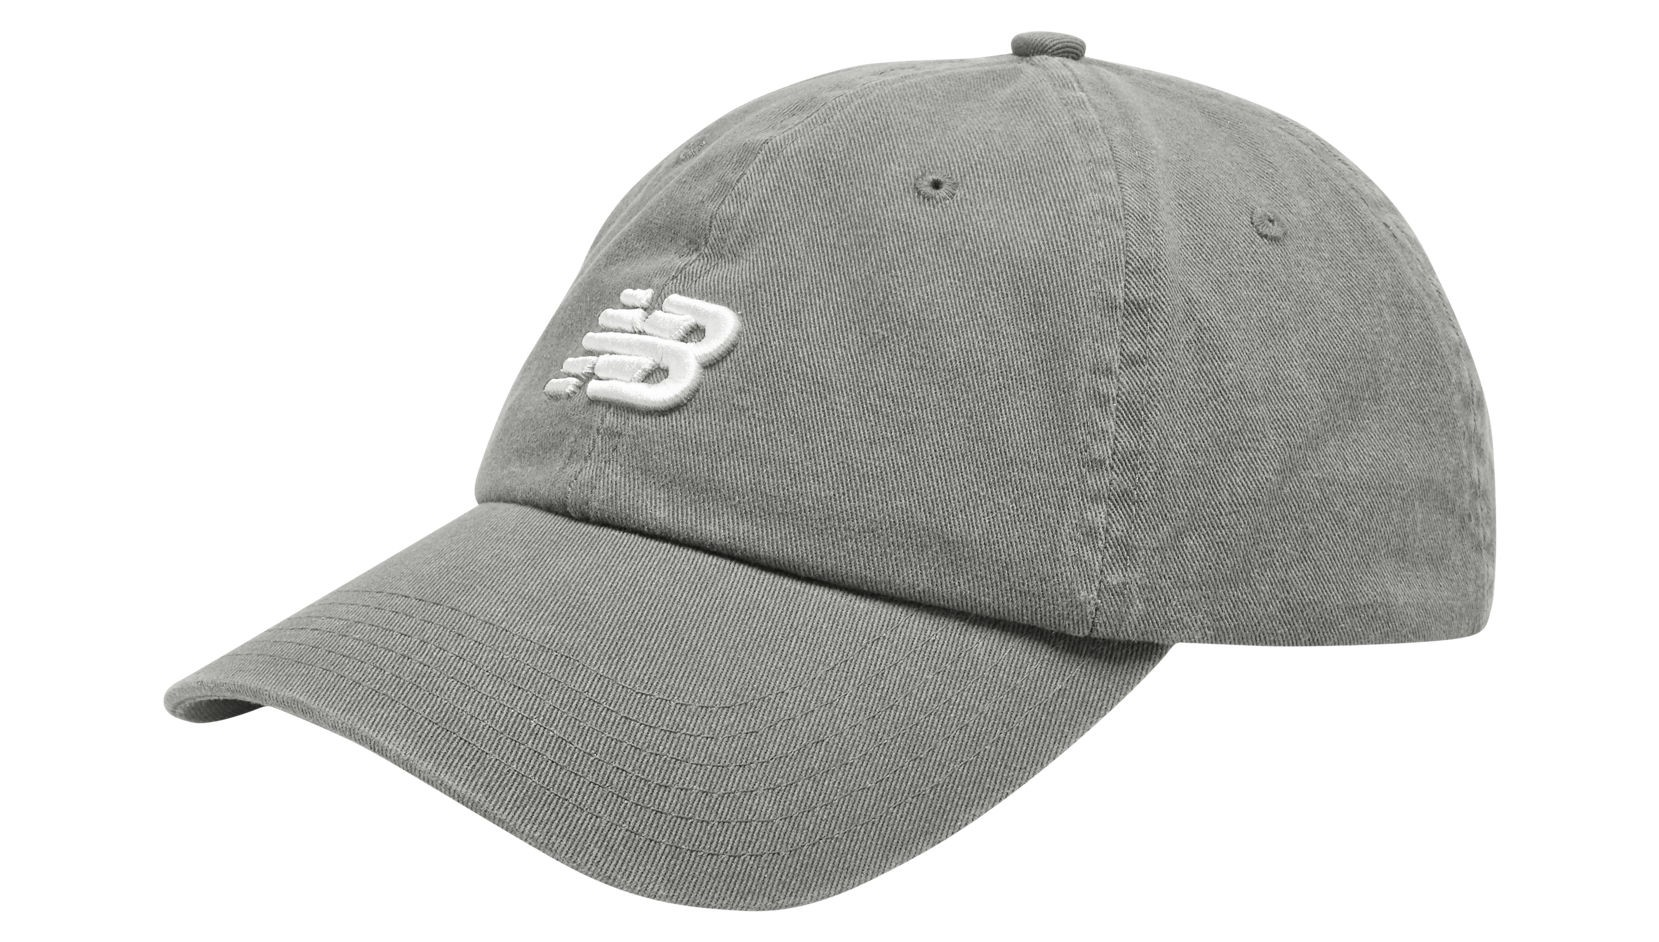 6-PANEL CURVED BRIM NB CLASSIC HAT New balance